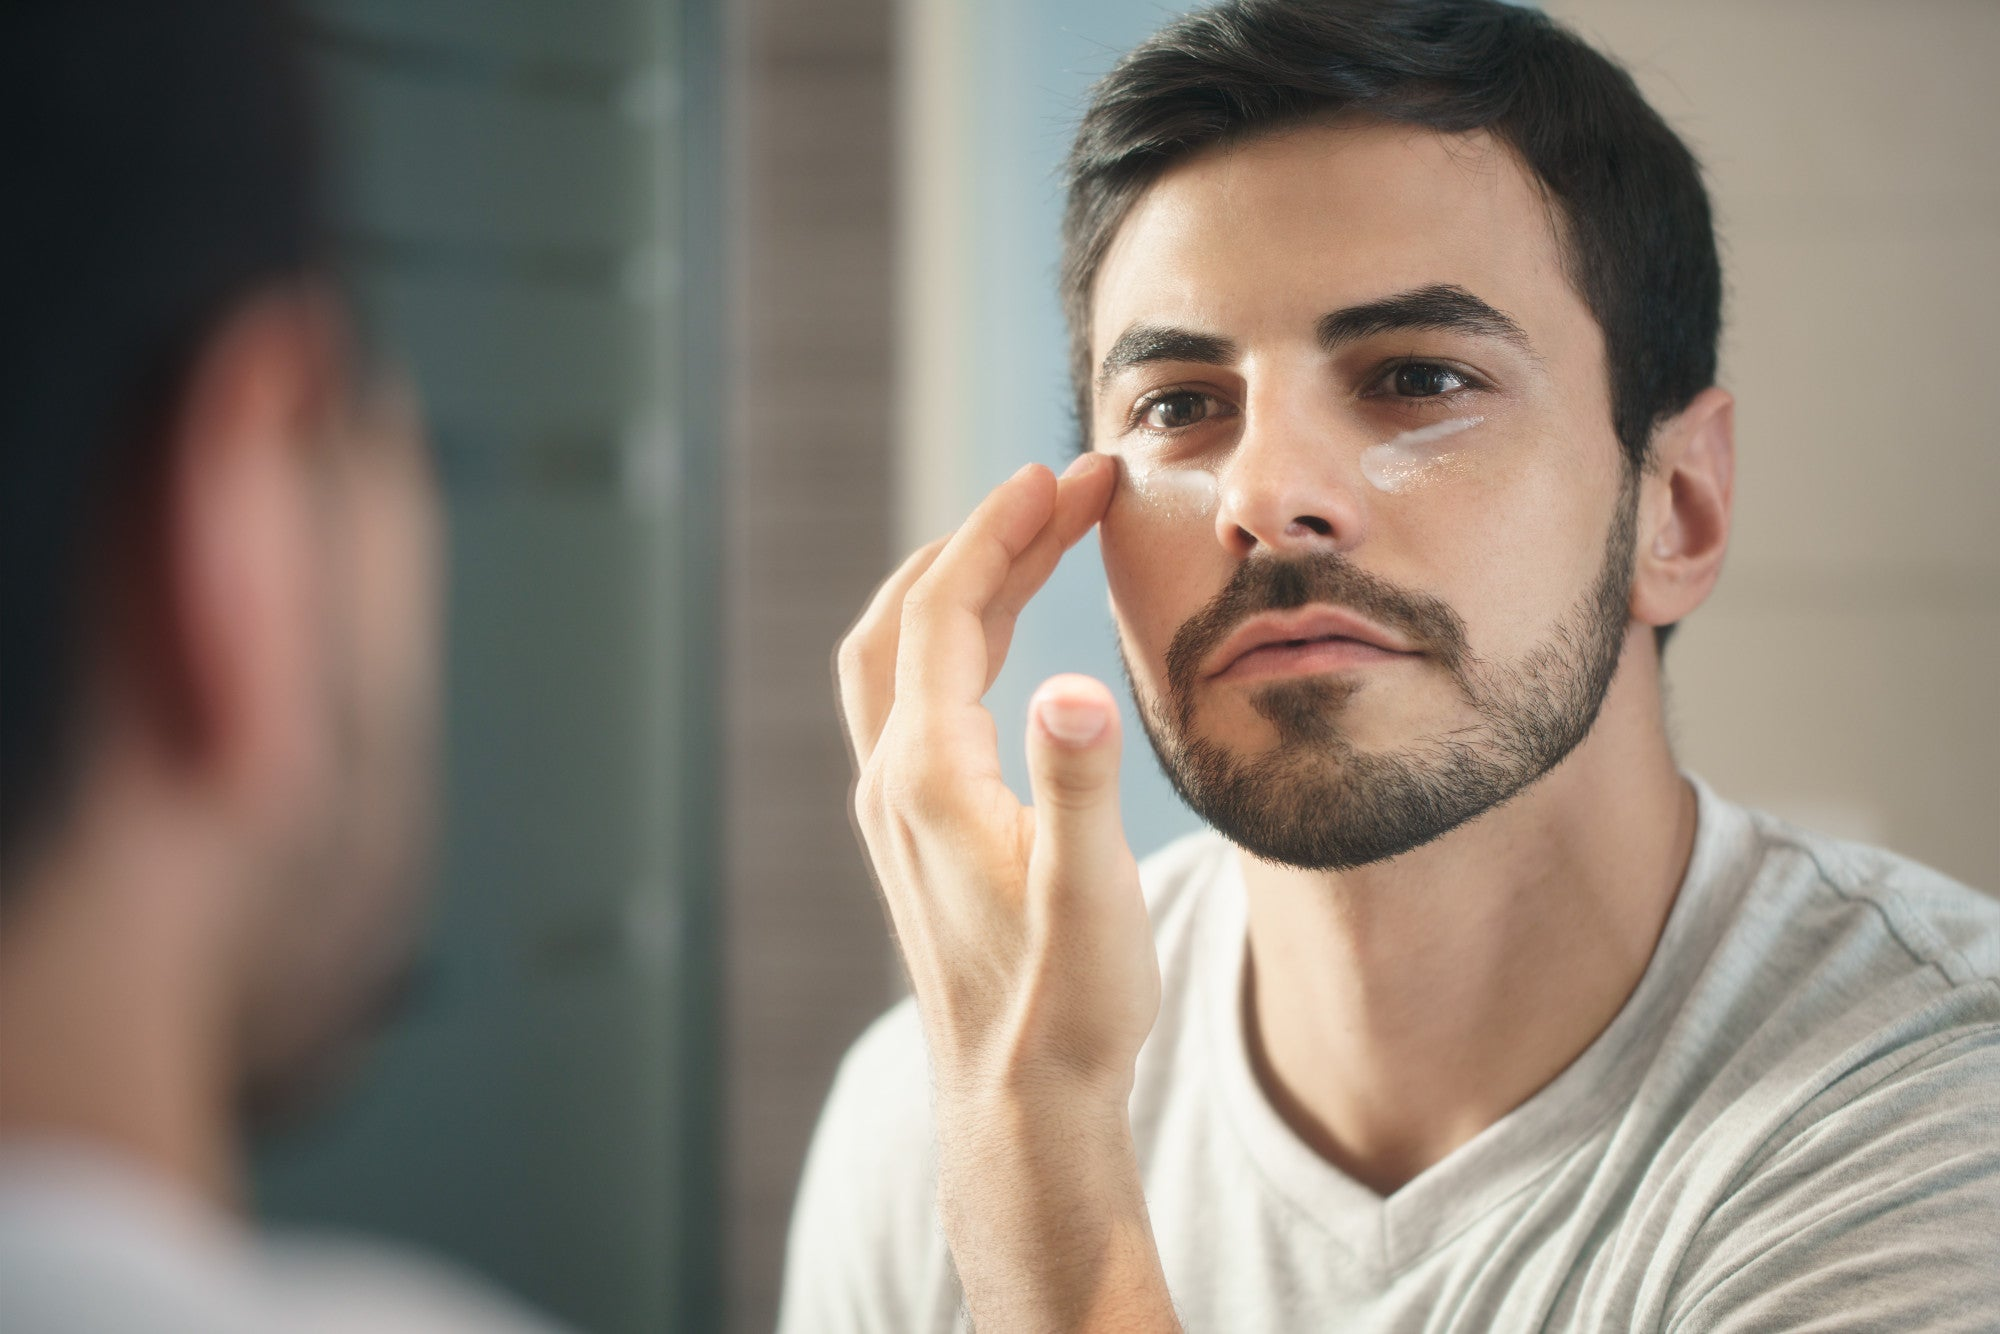 Why are Skin Care Products for Men Different from Women's?